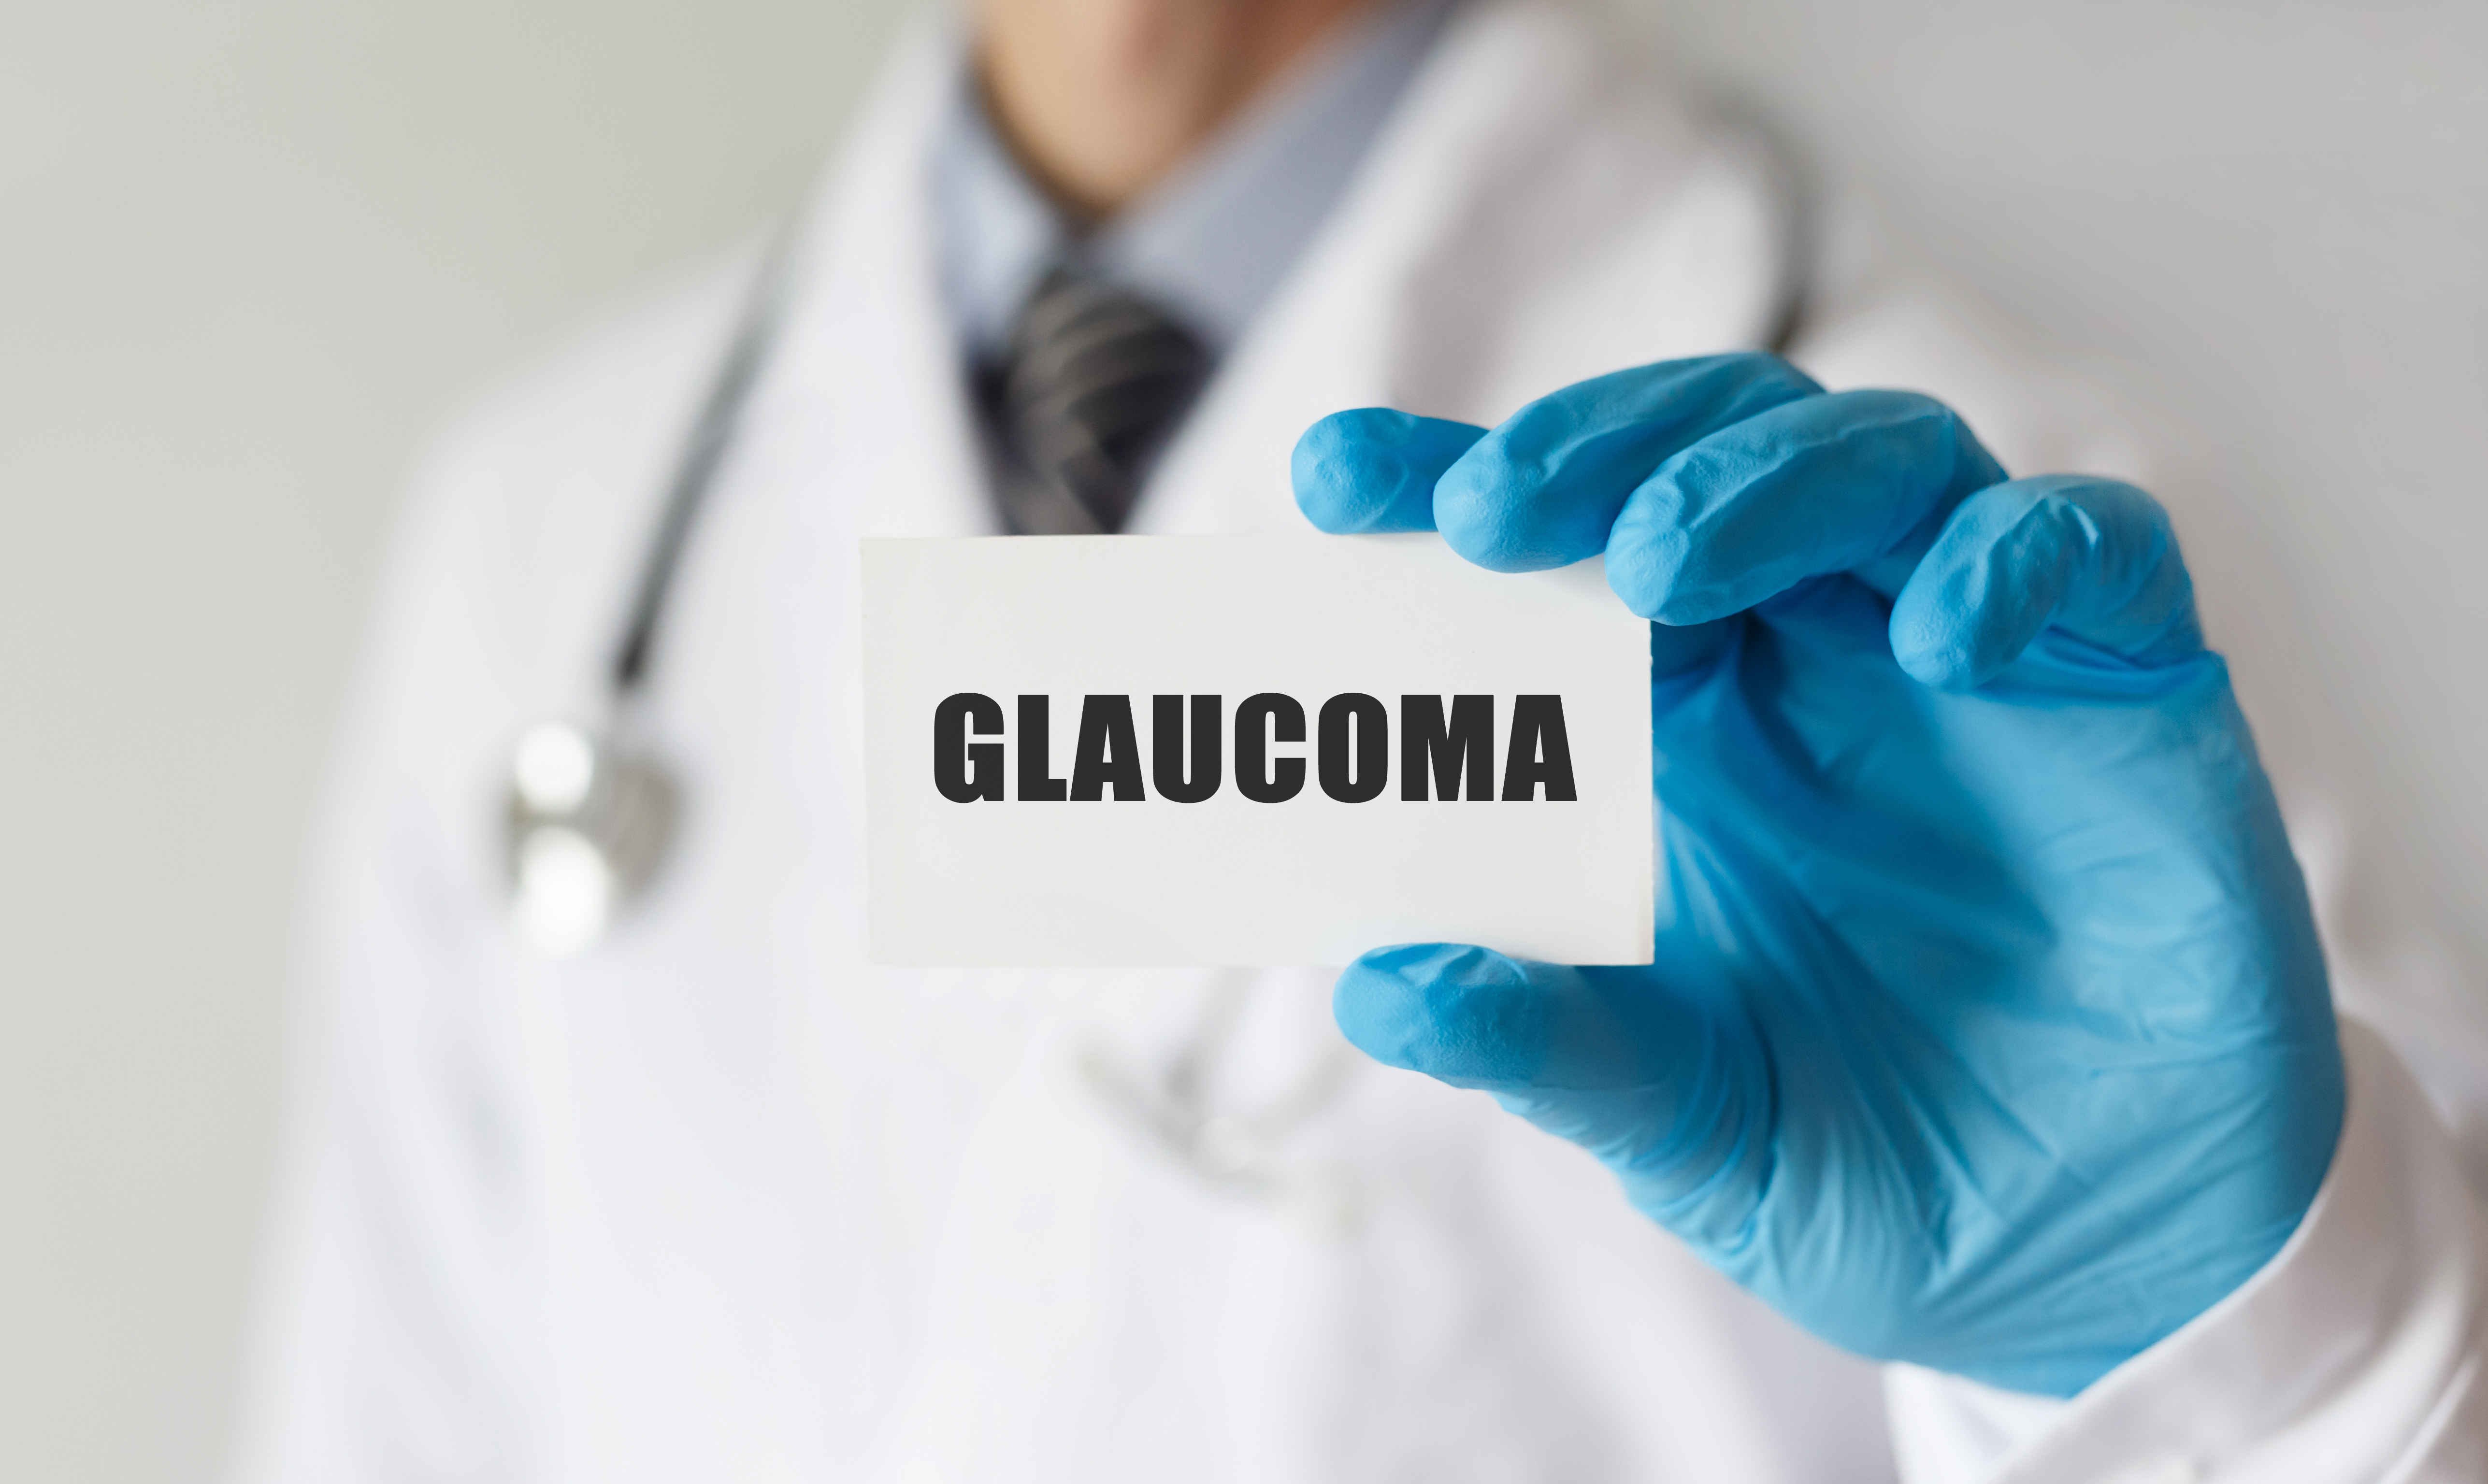 How To Find The Best Glaucoma Specialist Near Me?